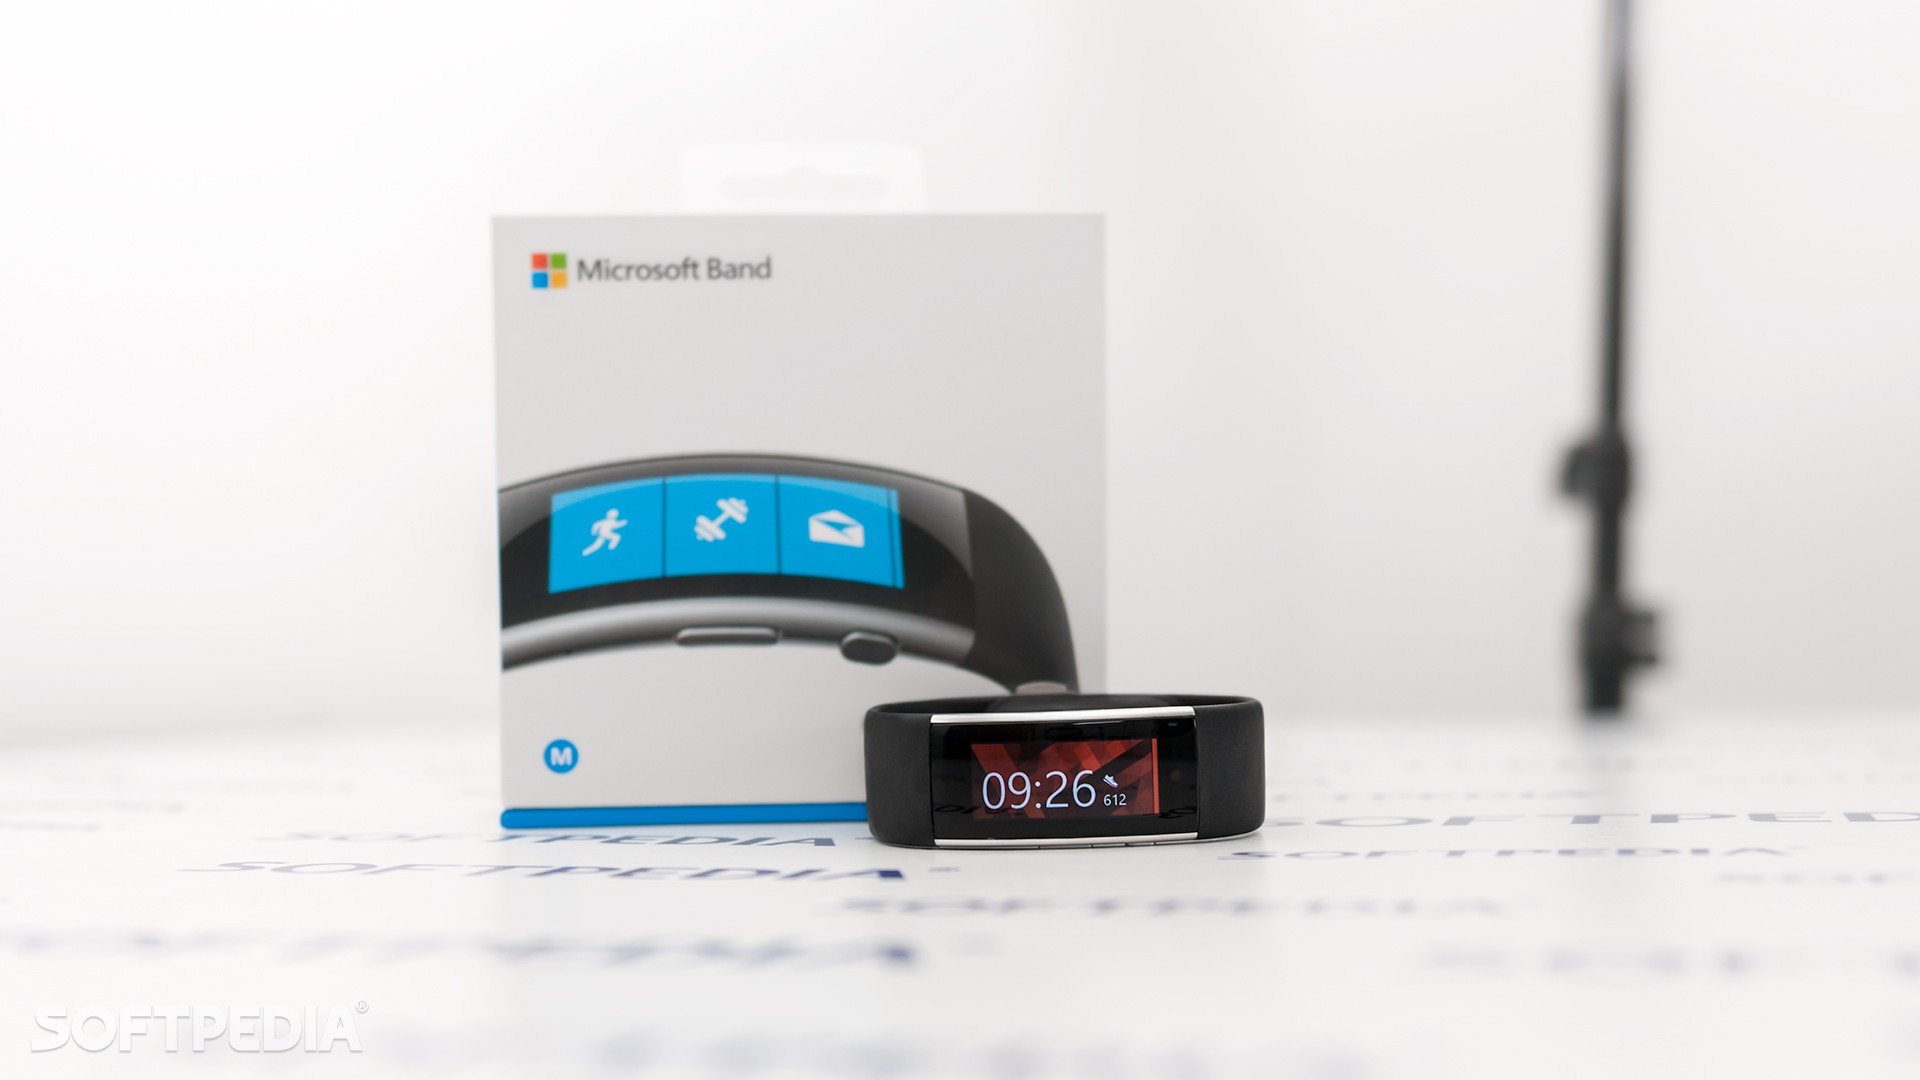 Microsoft discontinuing Microsoft Band website and mobile apps